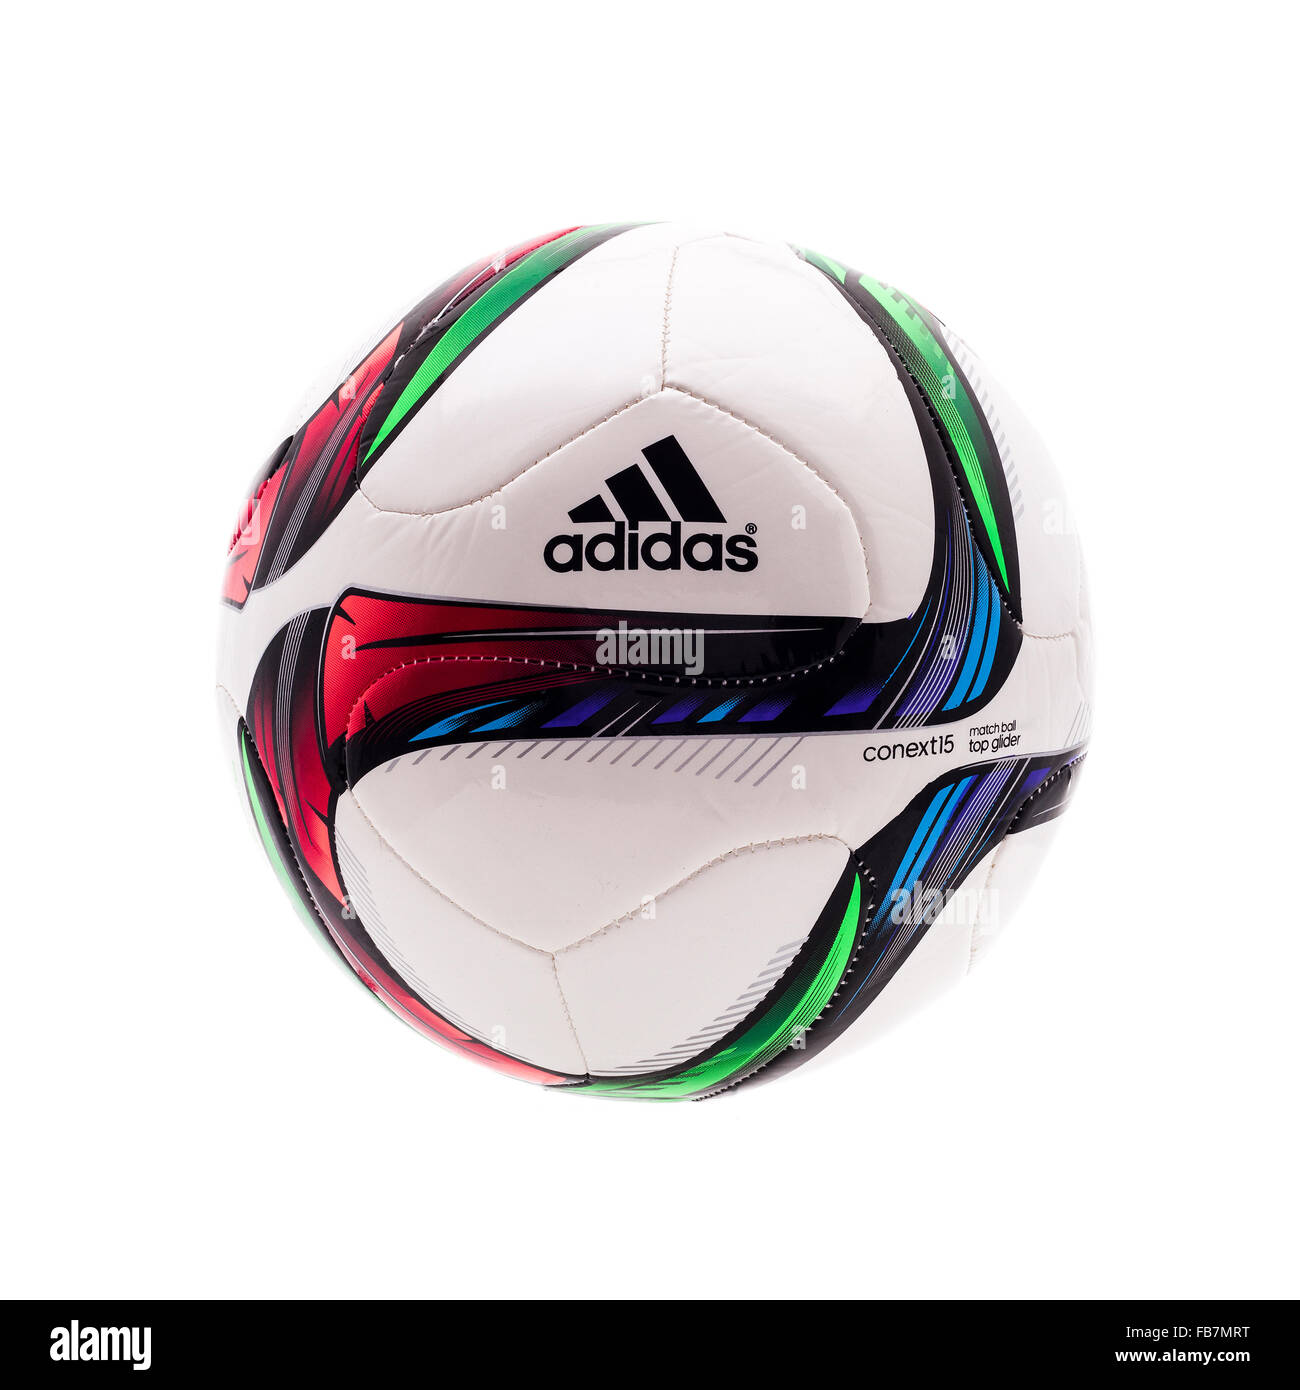 Adidas CONEXT 15 Top Glider Football for the 2015 Womans World Cup in Canada - Stock Image